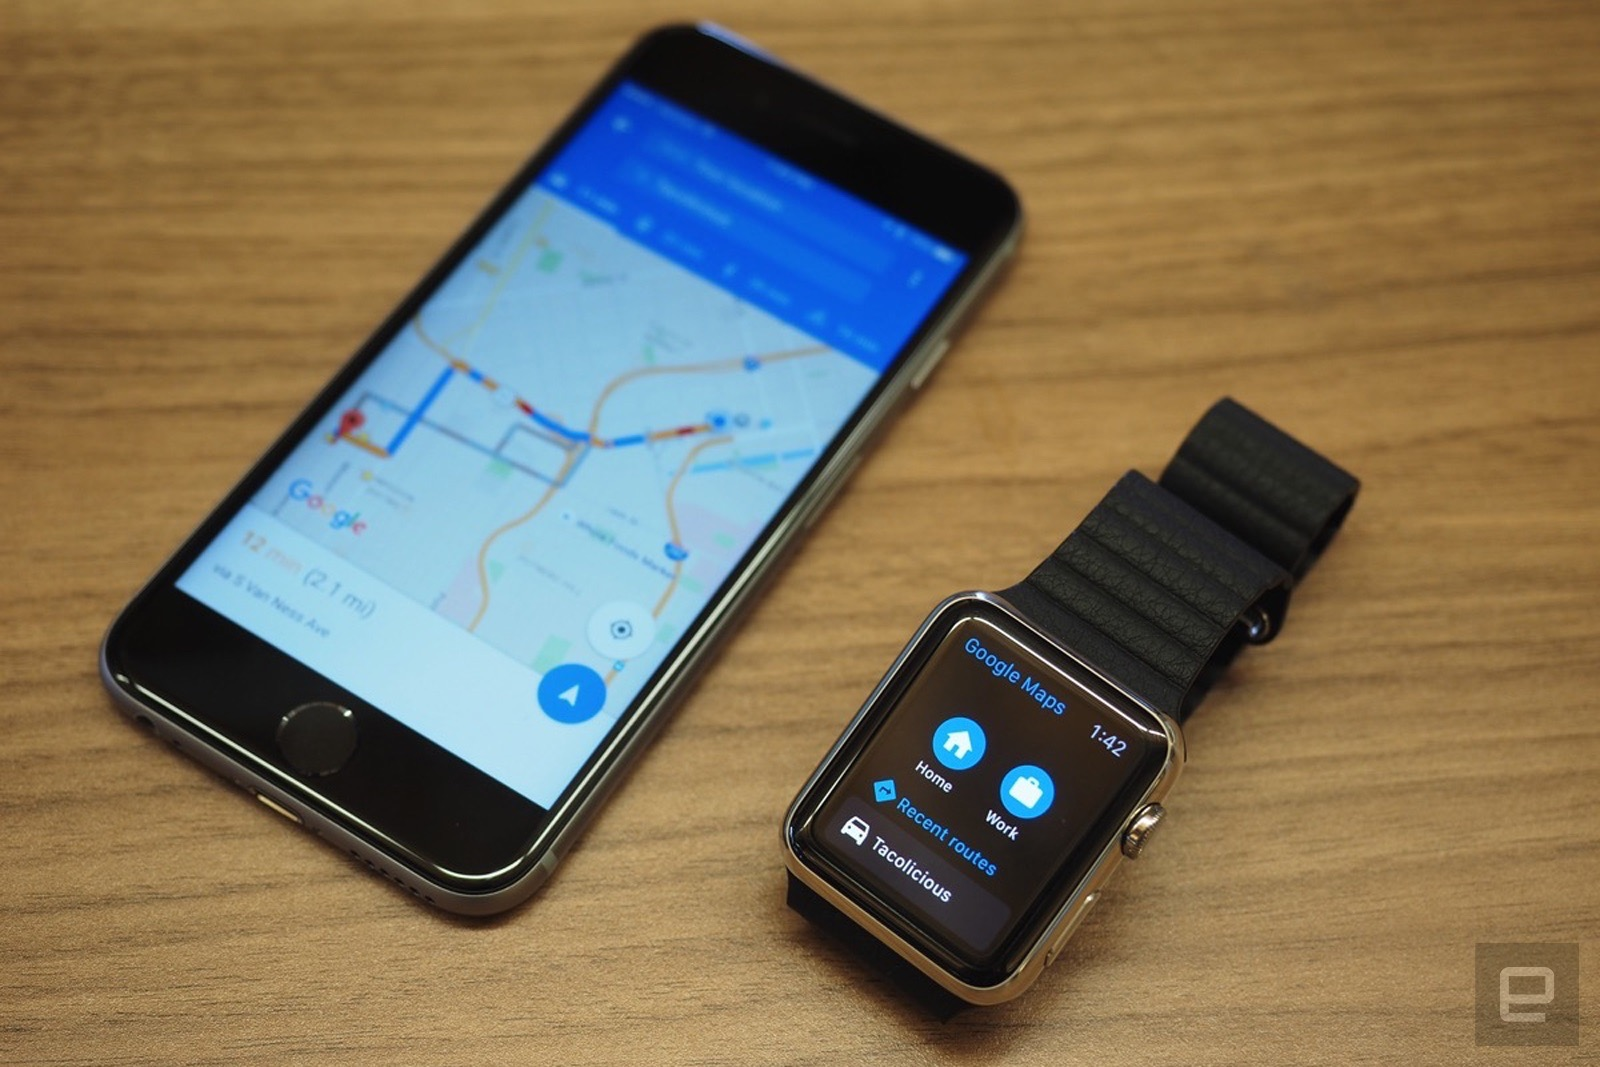 Apple Watch apps for Amazon, eBay and Google Maps disappear